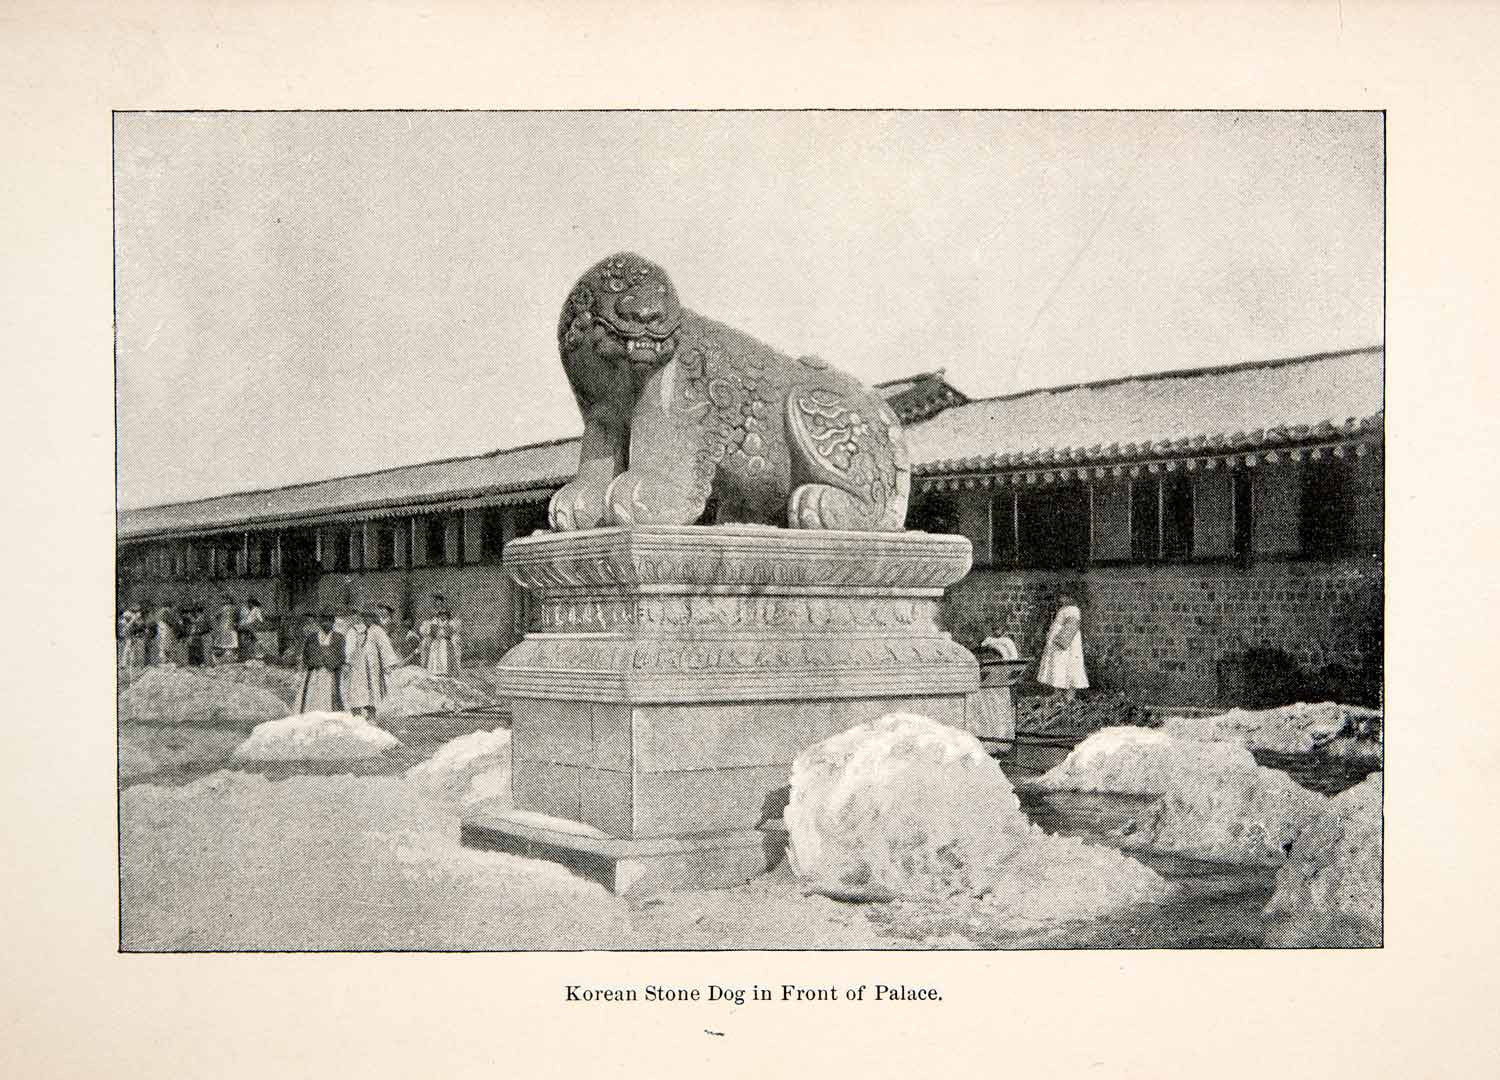 1892 Print Seoul Korean Palace Stone Dog Sculpture Statue Oriental Asian XGLC6 - Period Paper